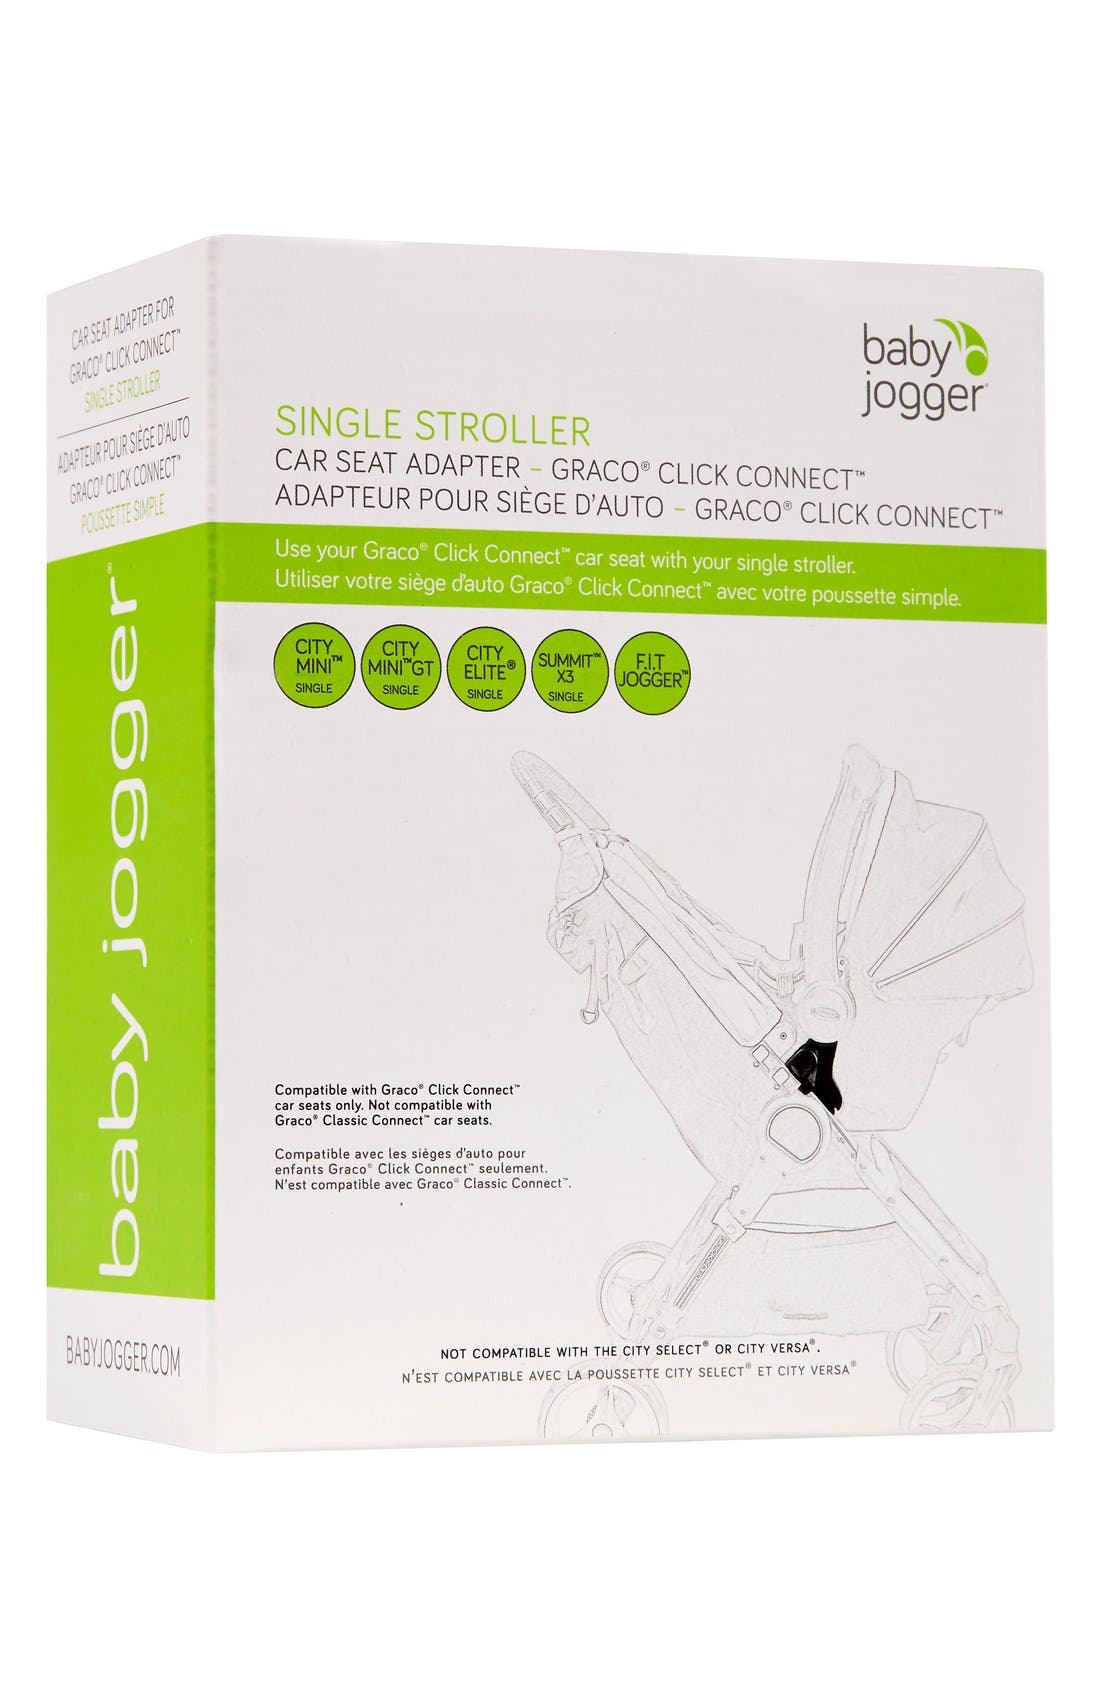 Baby Jogger Single Stroller Car Seat Adapter